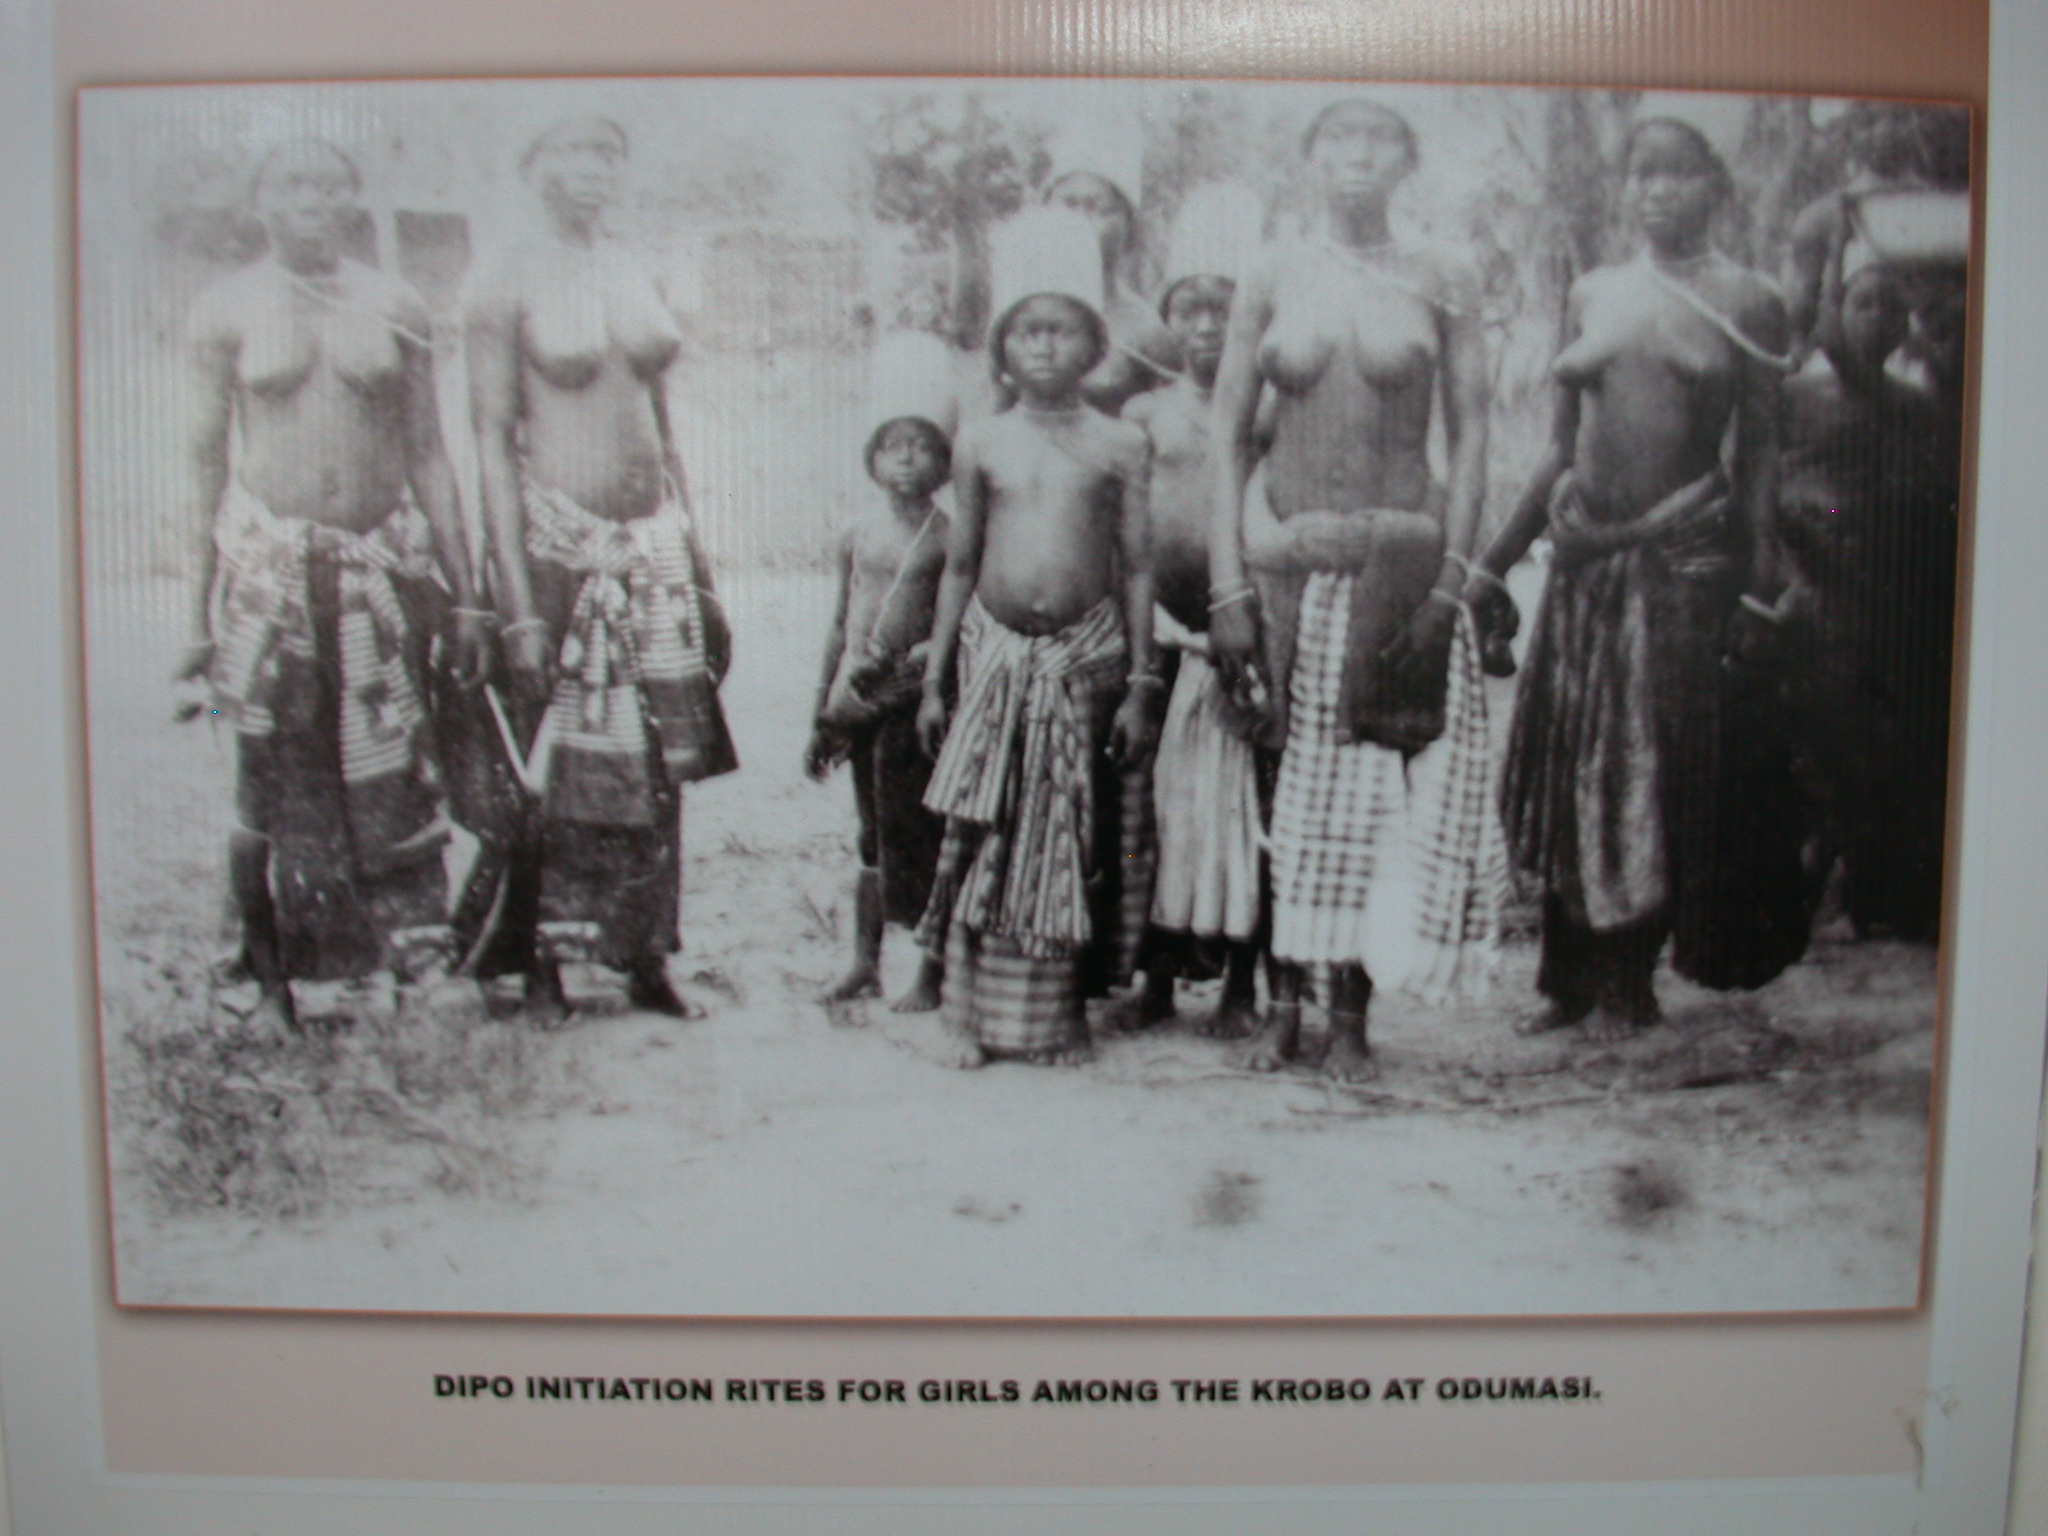 Picture of Dipo Initiation Rites for Girls Among the Krobo at Odumasi, National Museum, Accra, Ghana